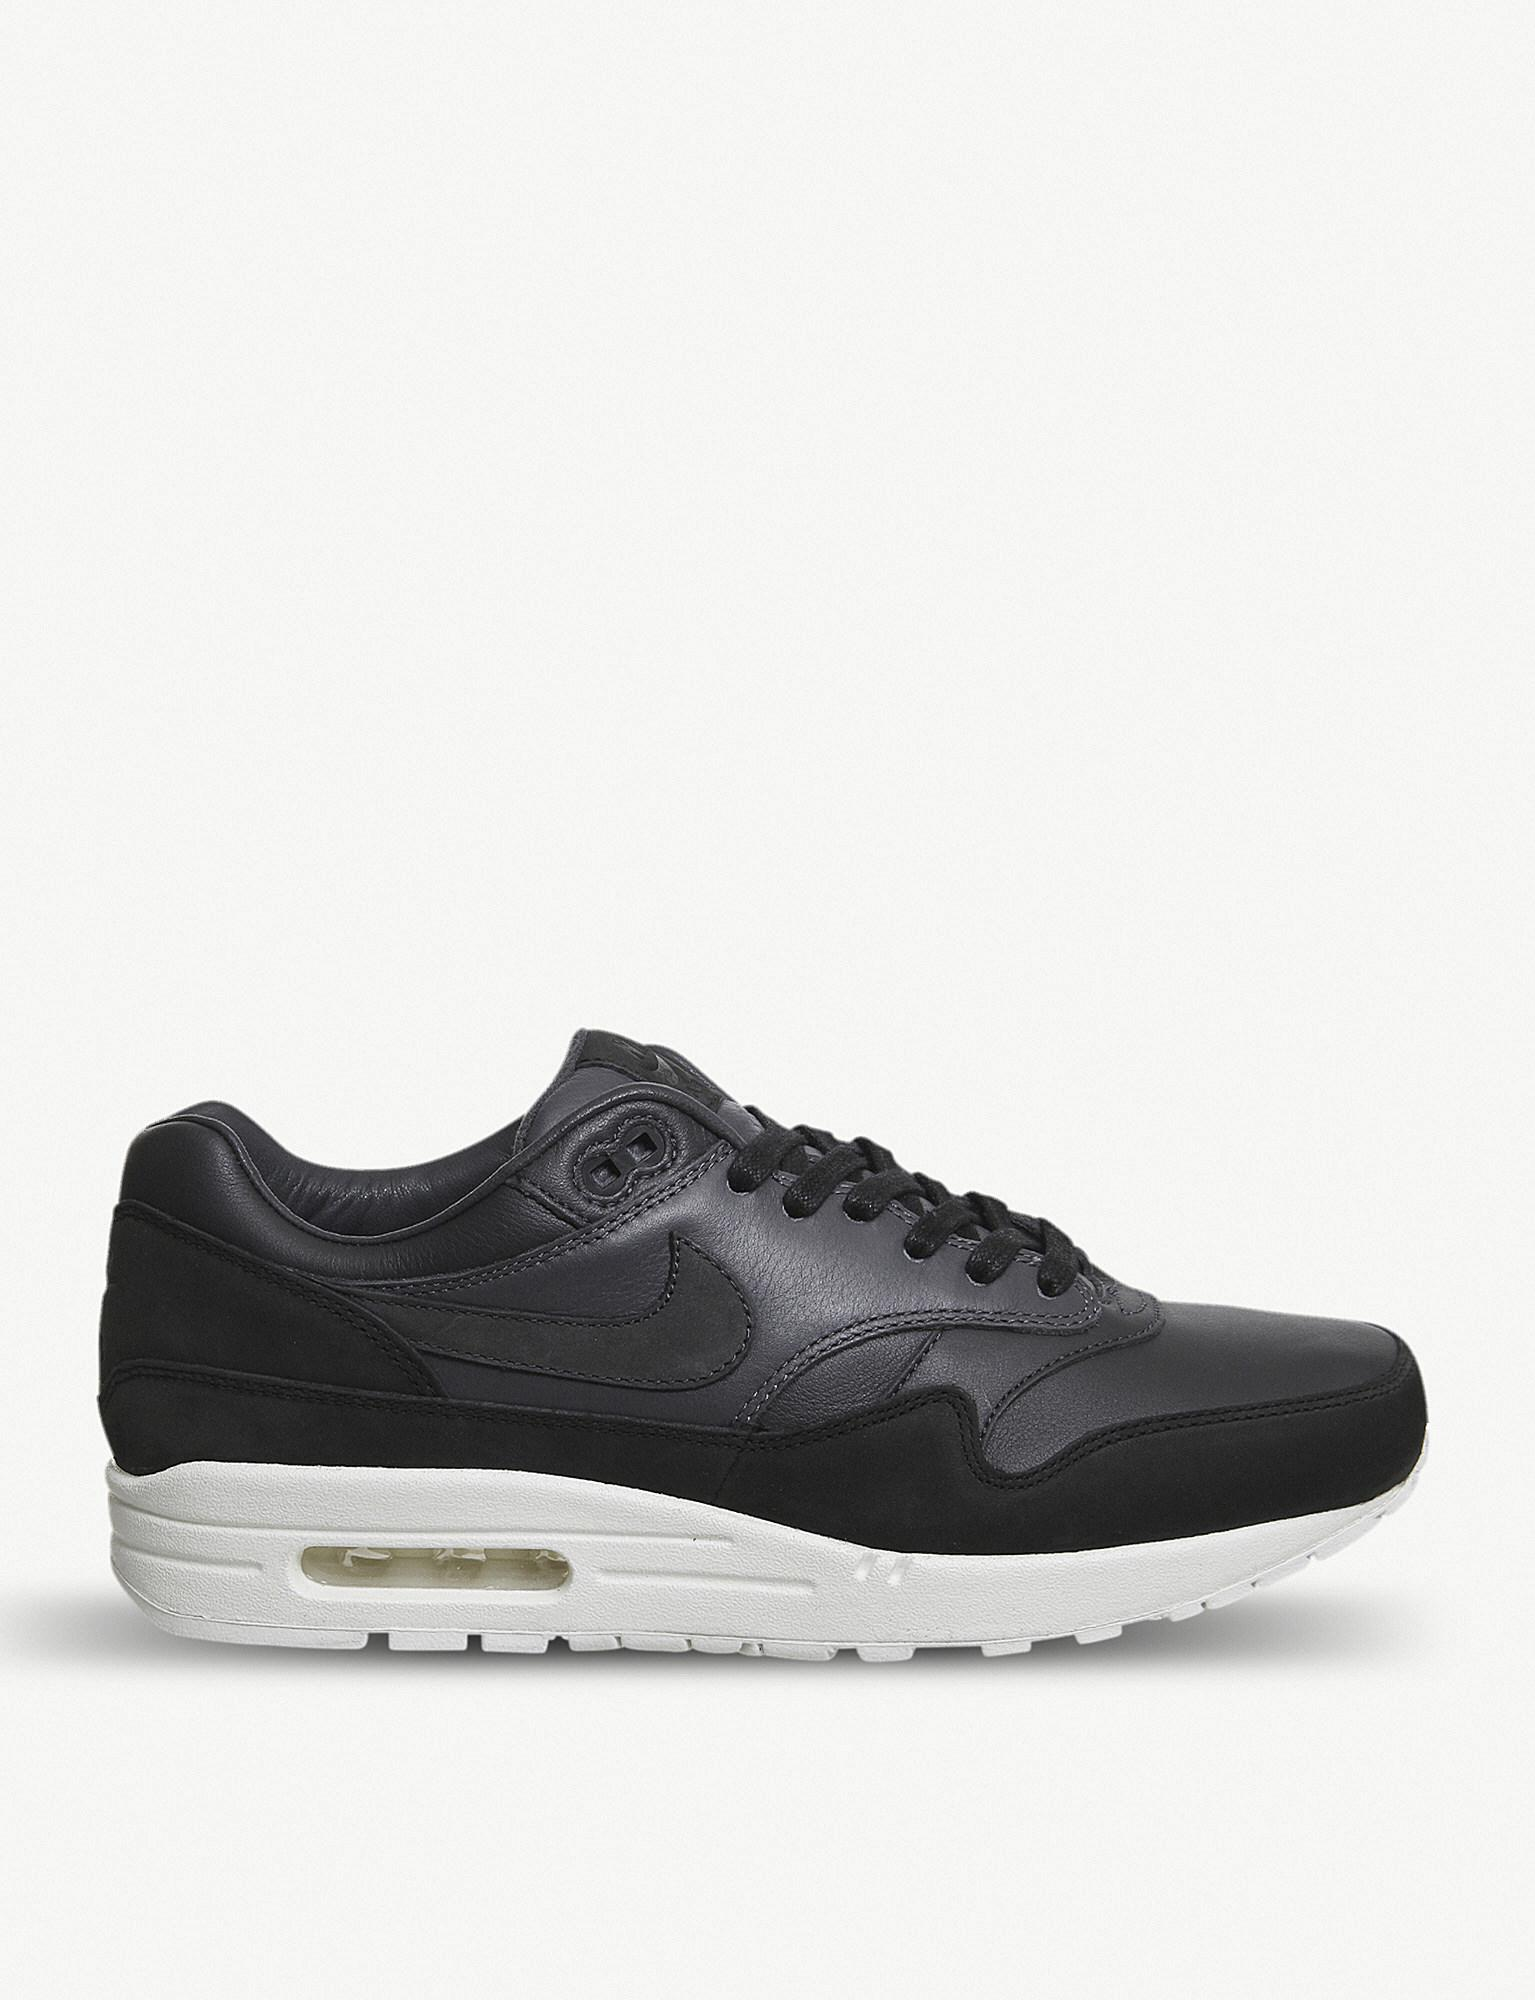 best service 04a26 03b86 ... czech nike. mens black lab air max 1 pinnacle leather trainers 7d5eb  45bb1